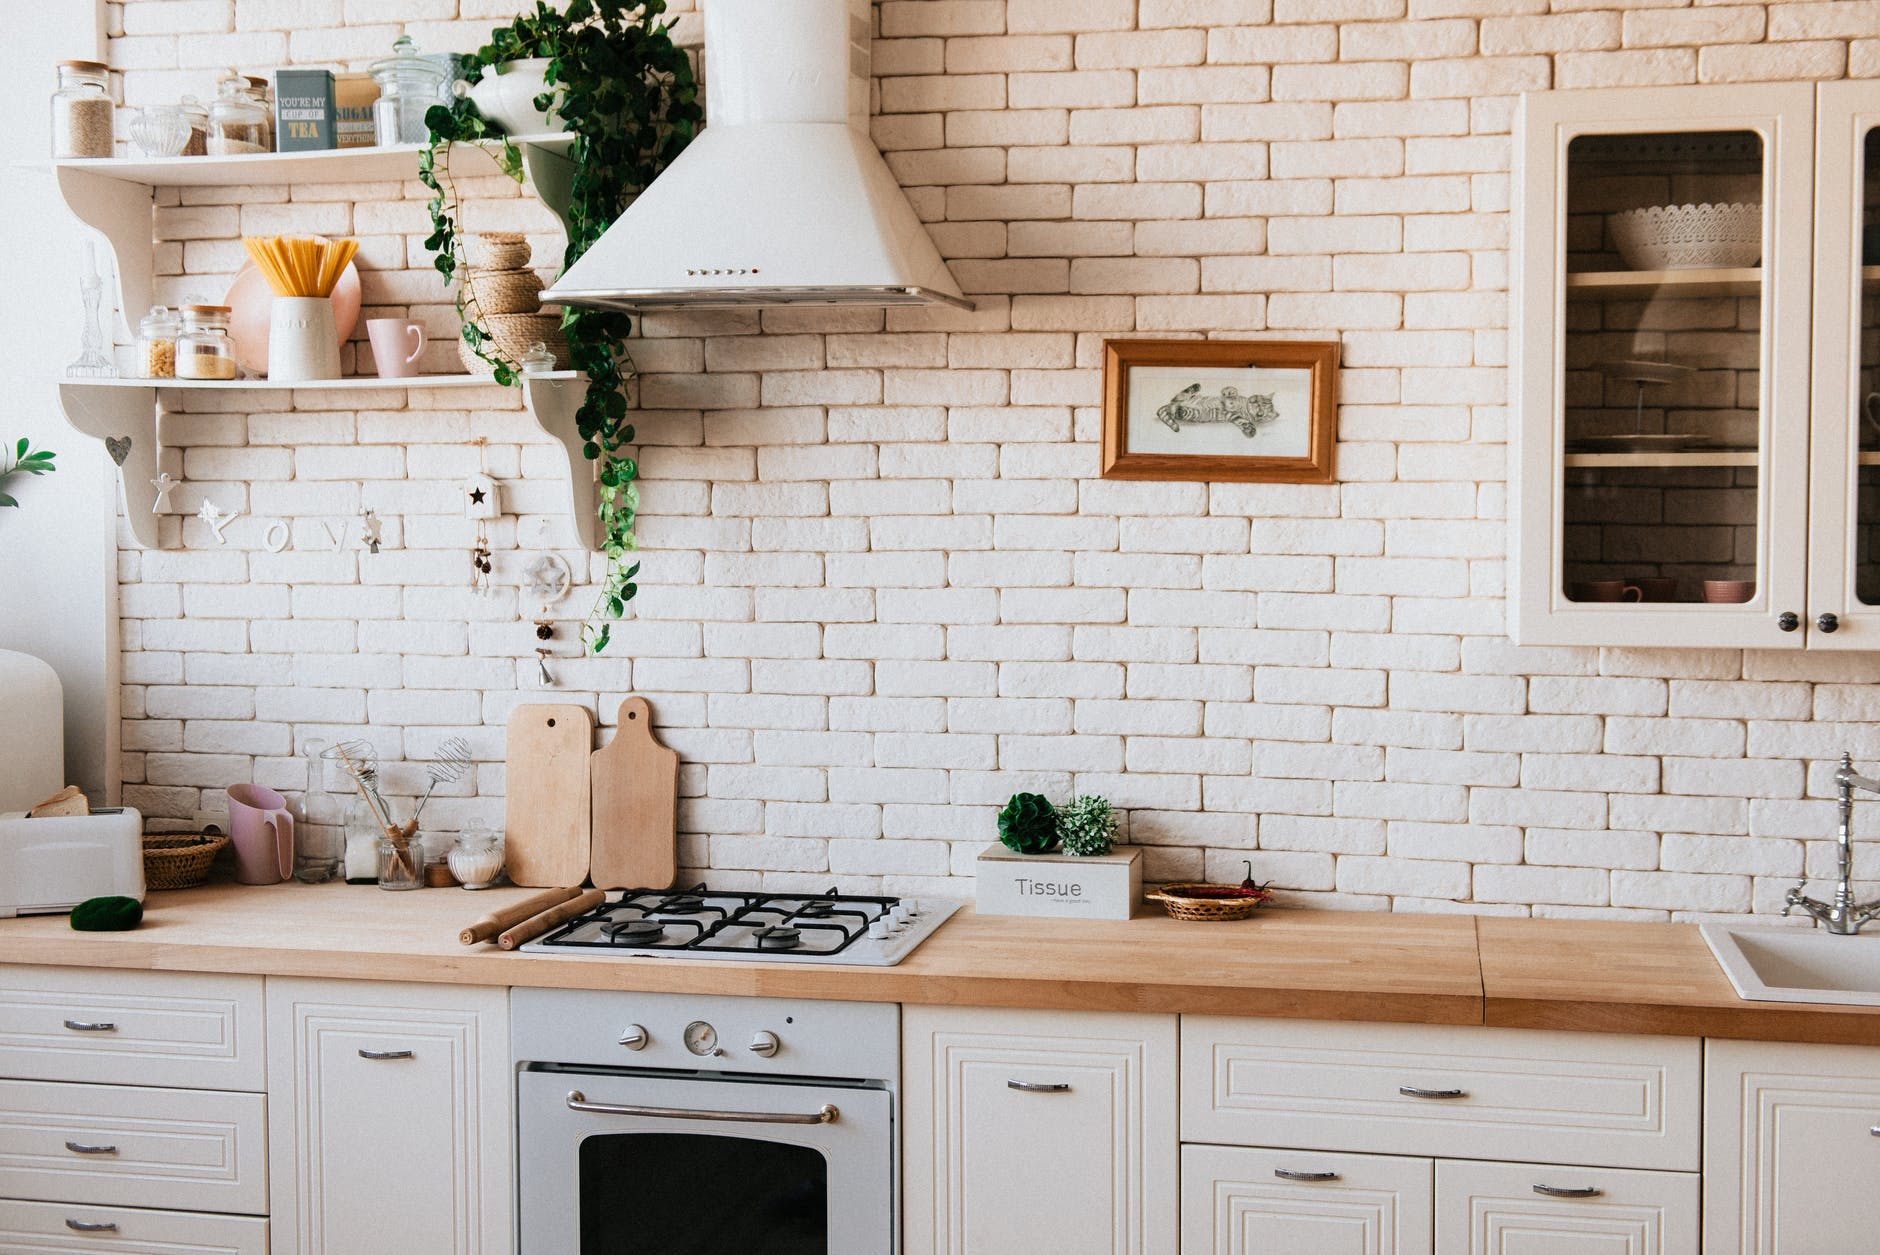 Turn Your Small Kitchen Into A Smart Compact Space